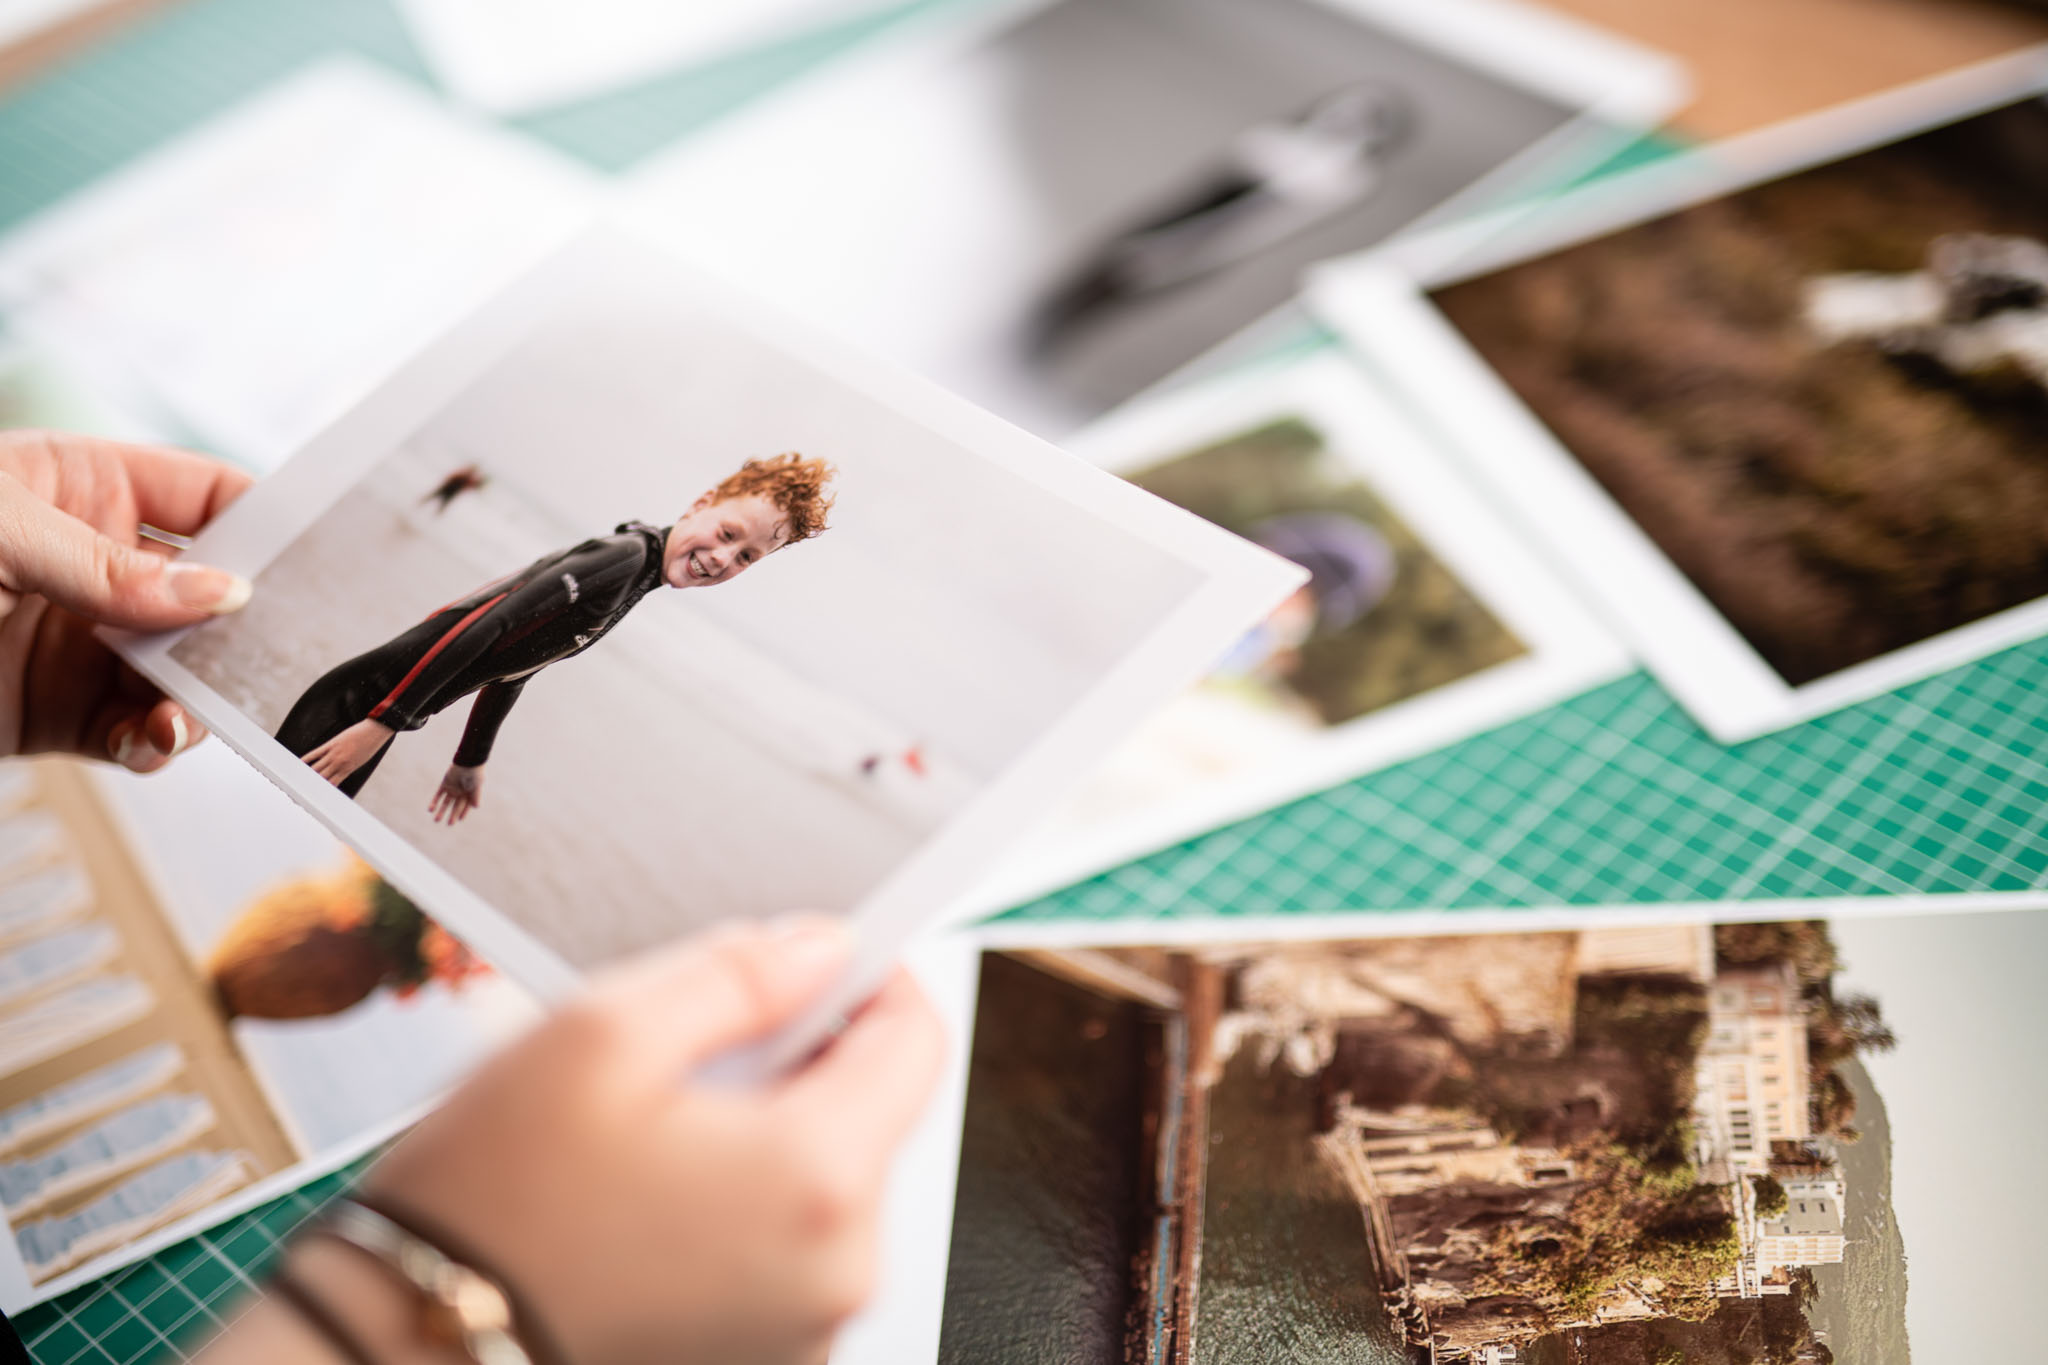 closeup photo of a woman hands, holding a photograph. There are photographs on a table.